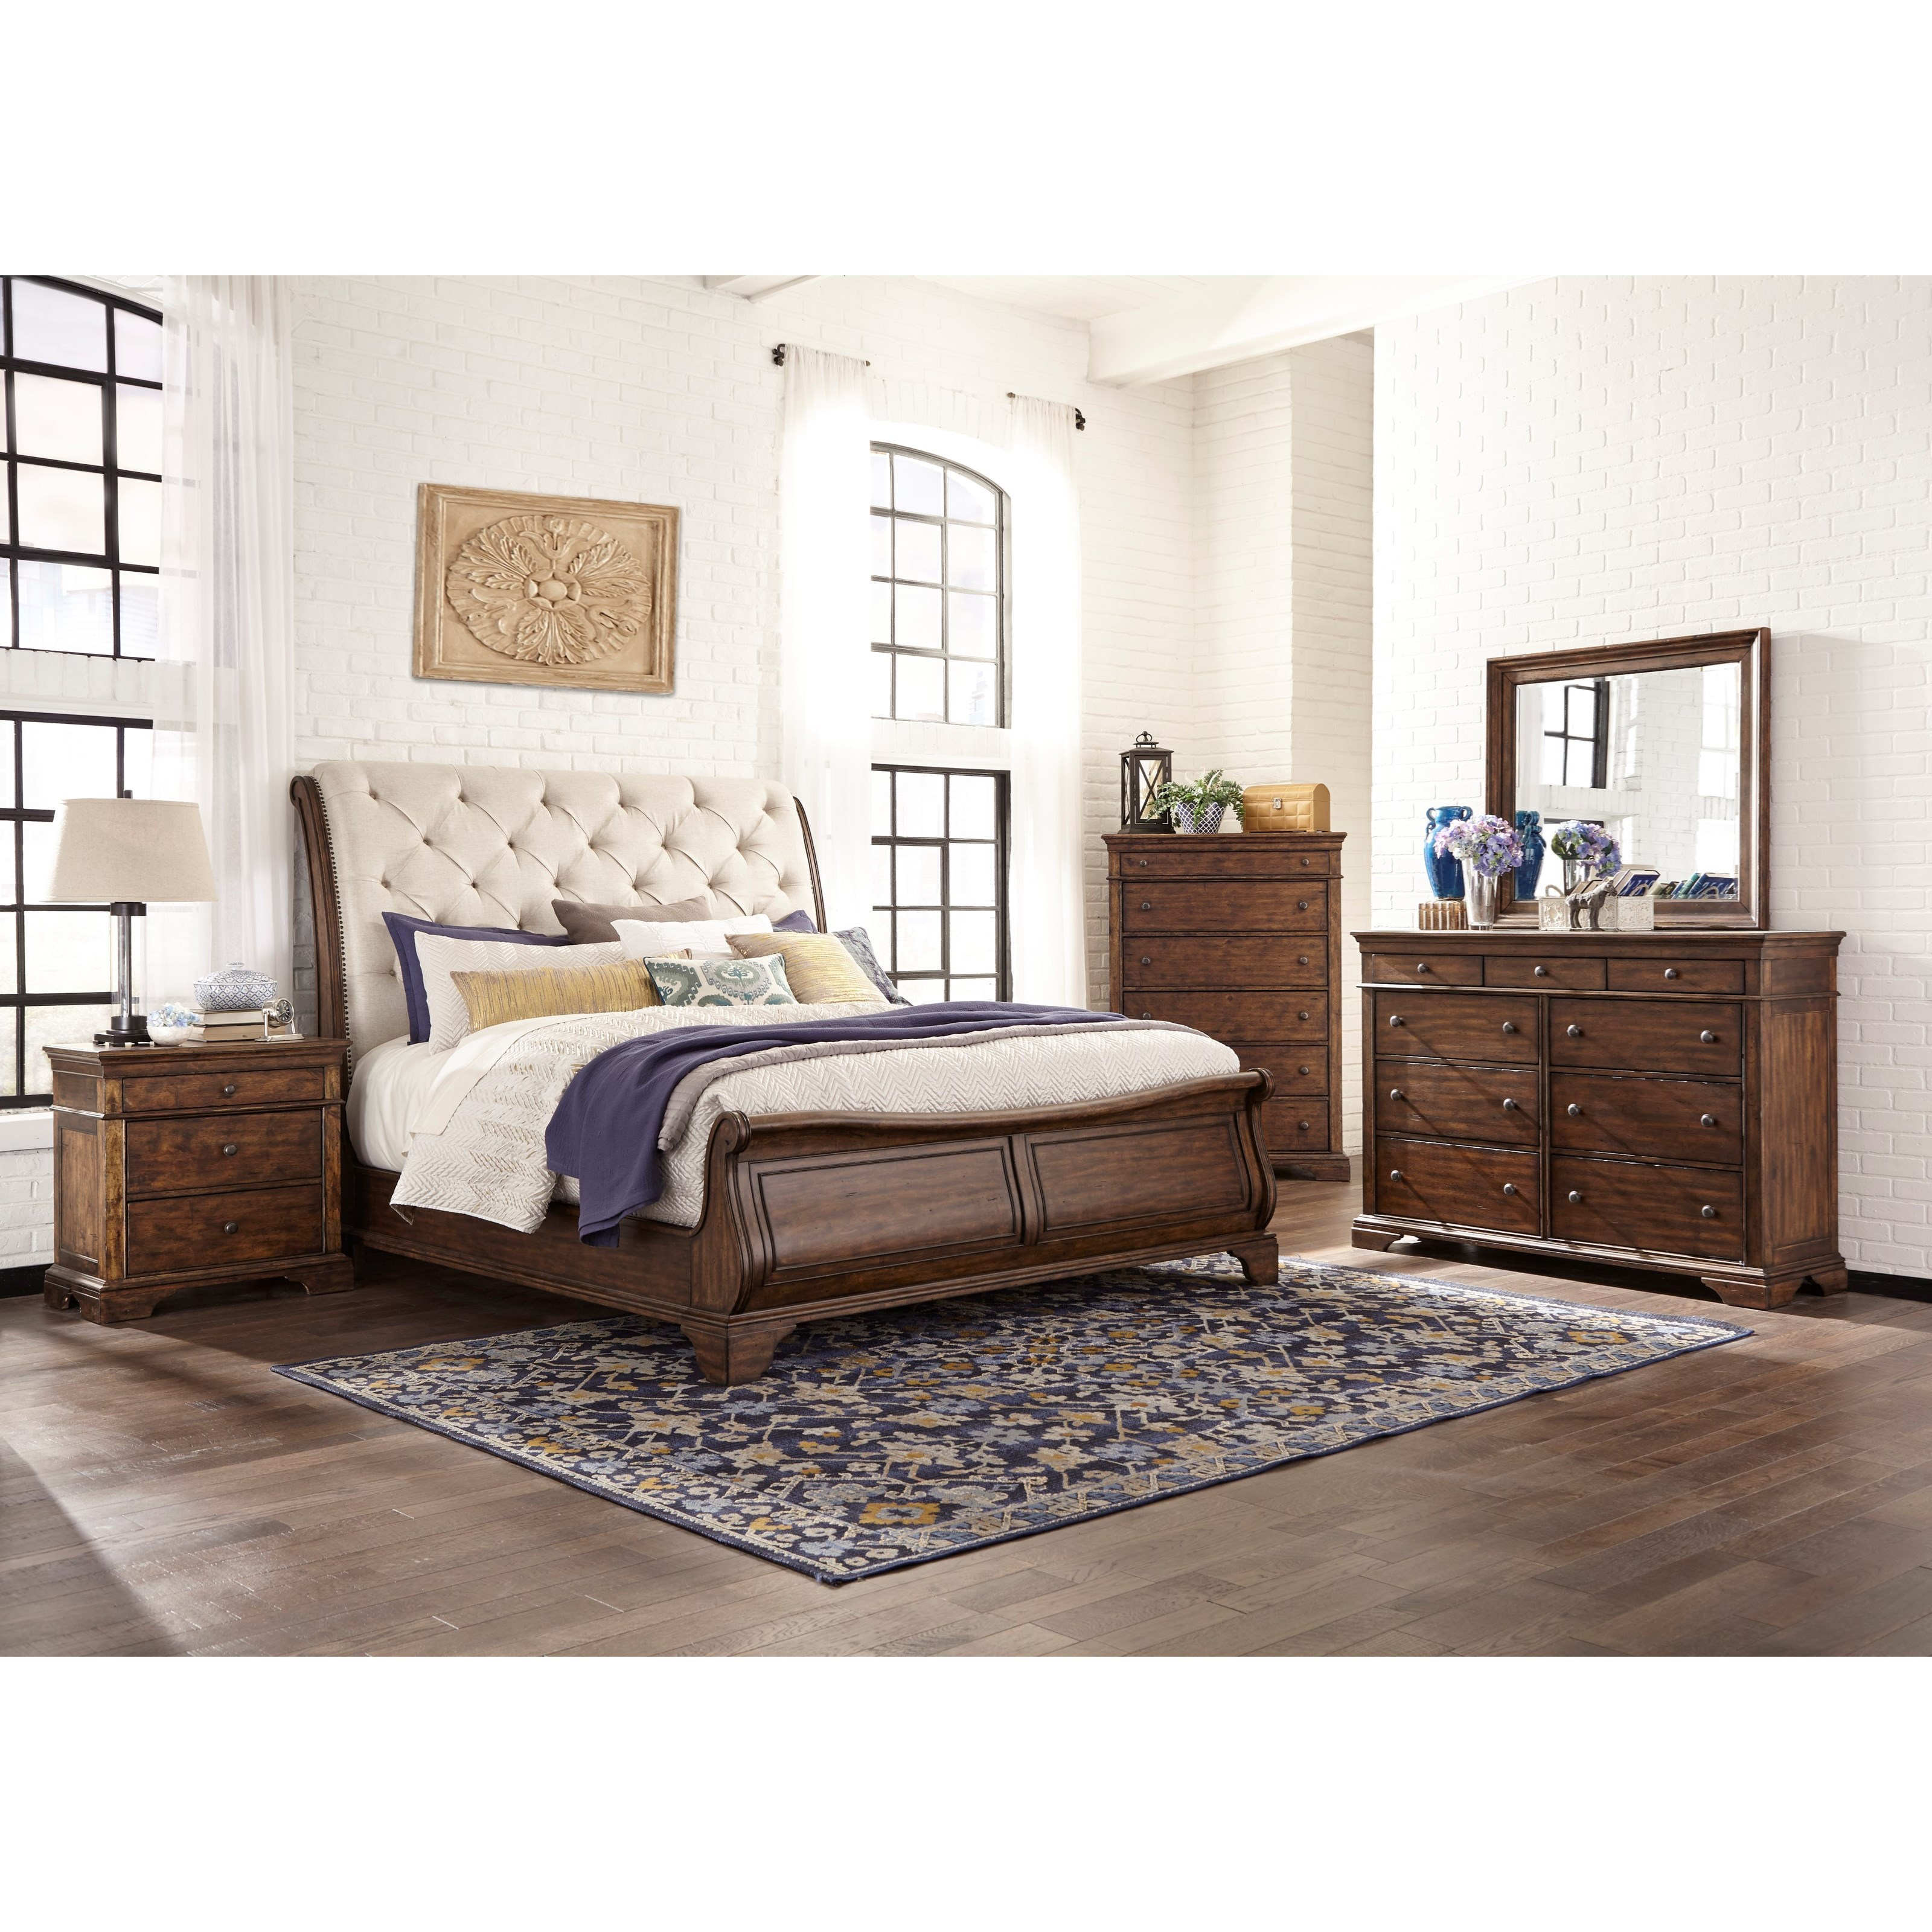 groups rune bedroom queen ashley bhd signature s group collections design by bed item furniture zanbury